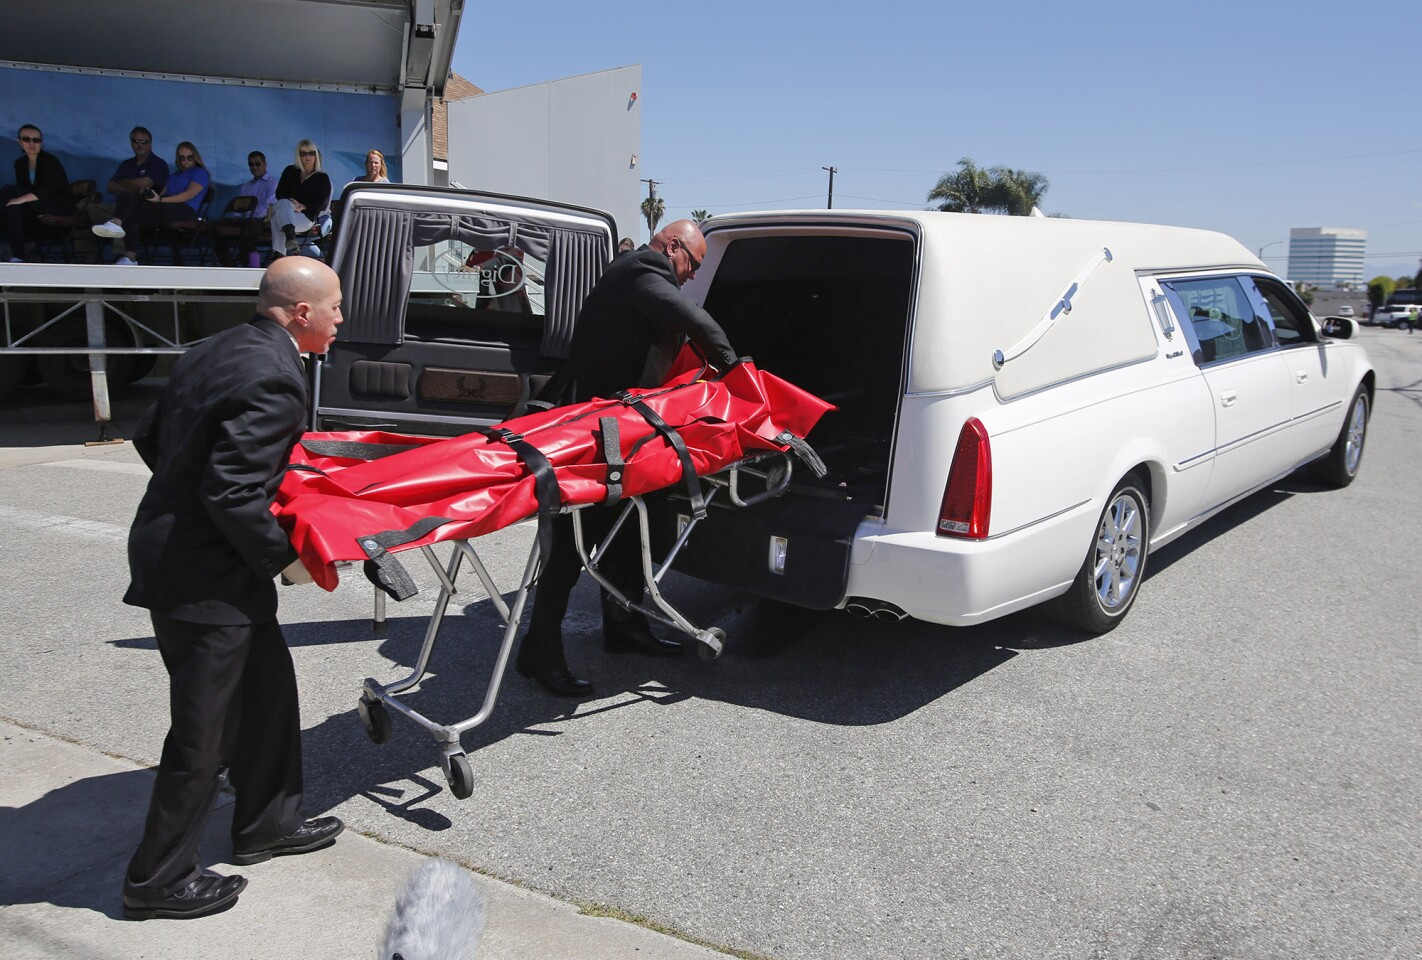 """Local coroners take away a mock fatality during a live accident reenactment for the """"Every 15 Minutes"""" program to emphasize the dangers of driving under the influence to students at Ocean View High School in Huntington Beach on Monday."""